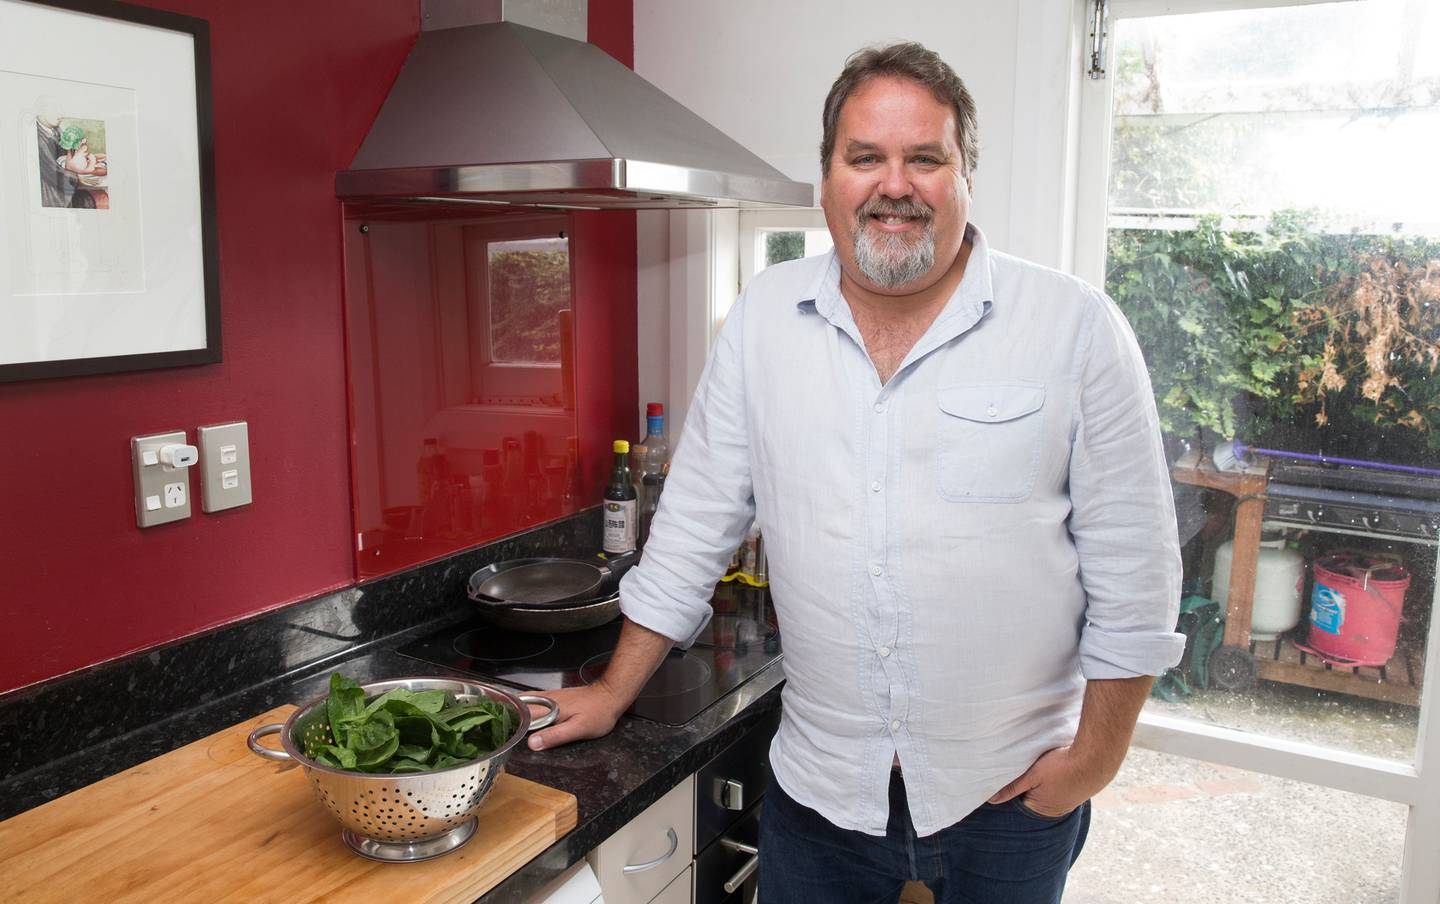 Chef Martin Bosley says current electricity options for cooking on a commercial scale are slow or...